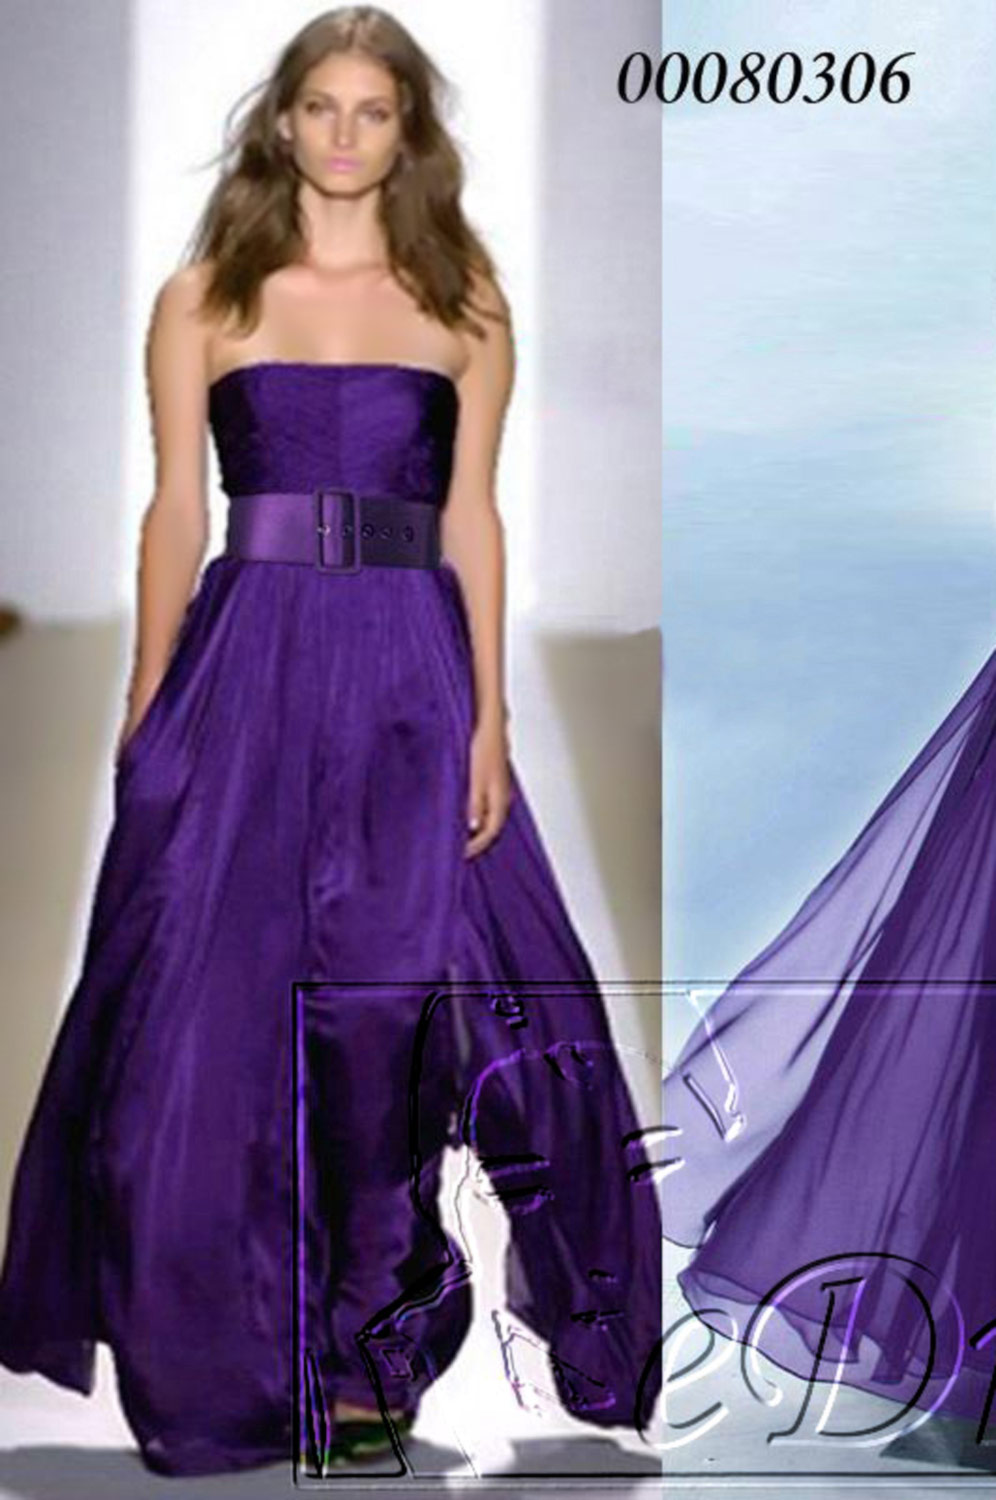 eDressit Celebrity Sexy Purple Prom Gown Evening Dress (00080306)